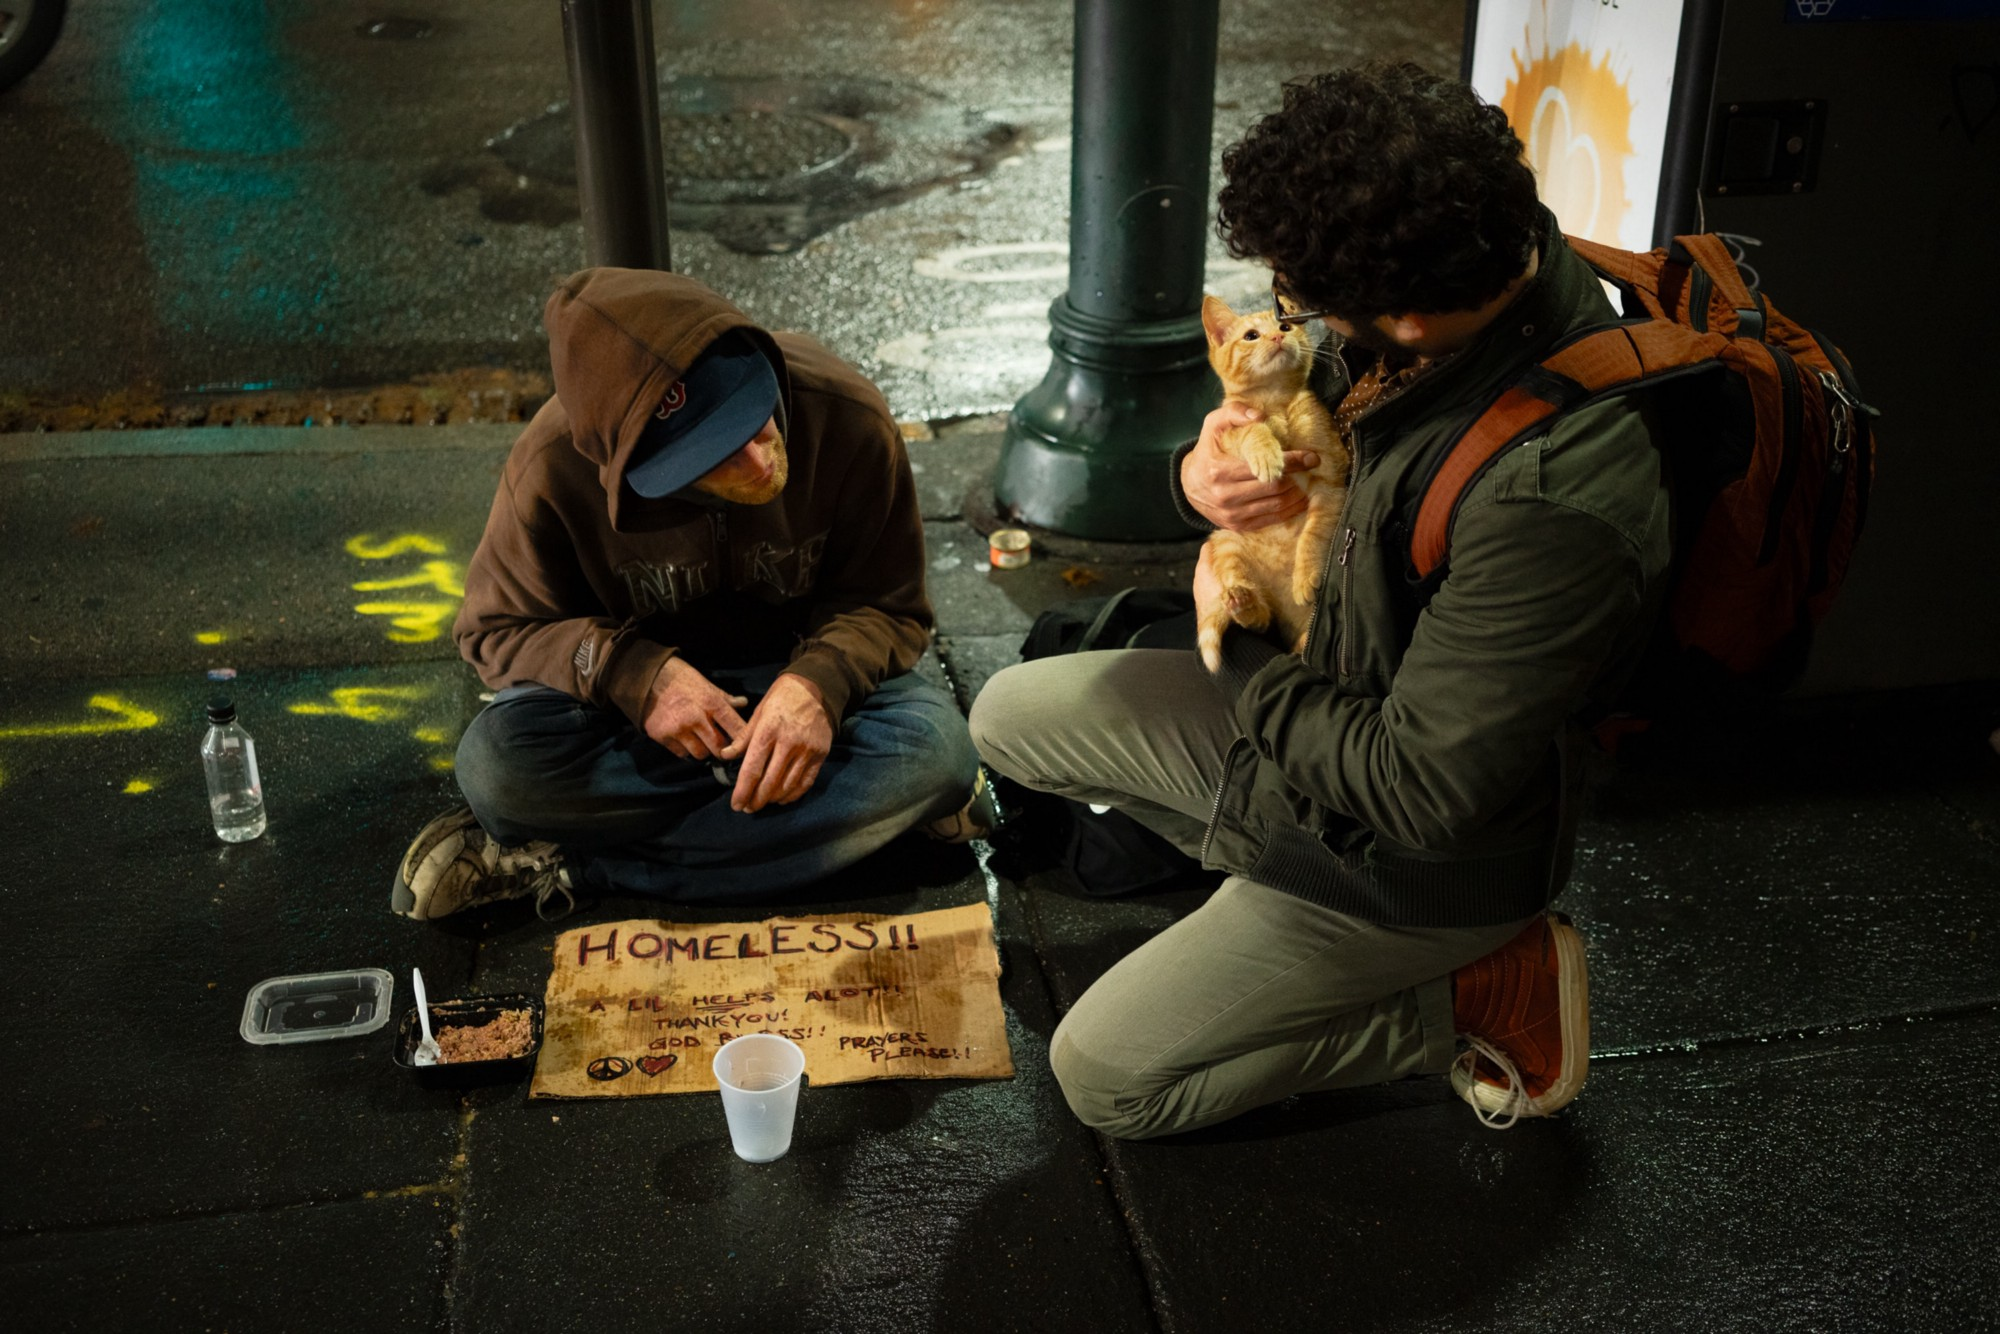 A man wearing a backpack holds an orange cat as he kneels next to a homeless person